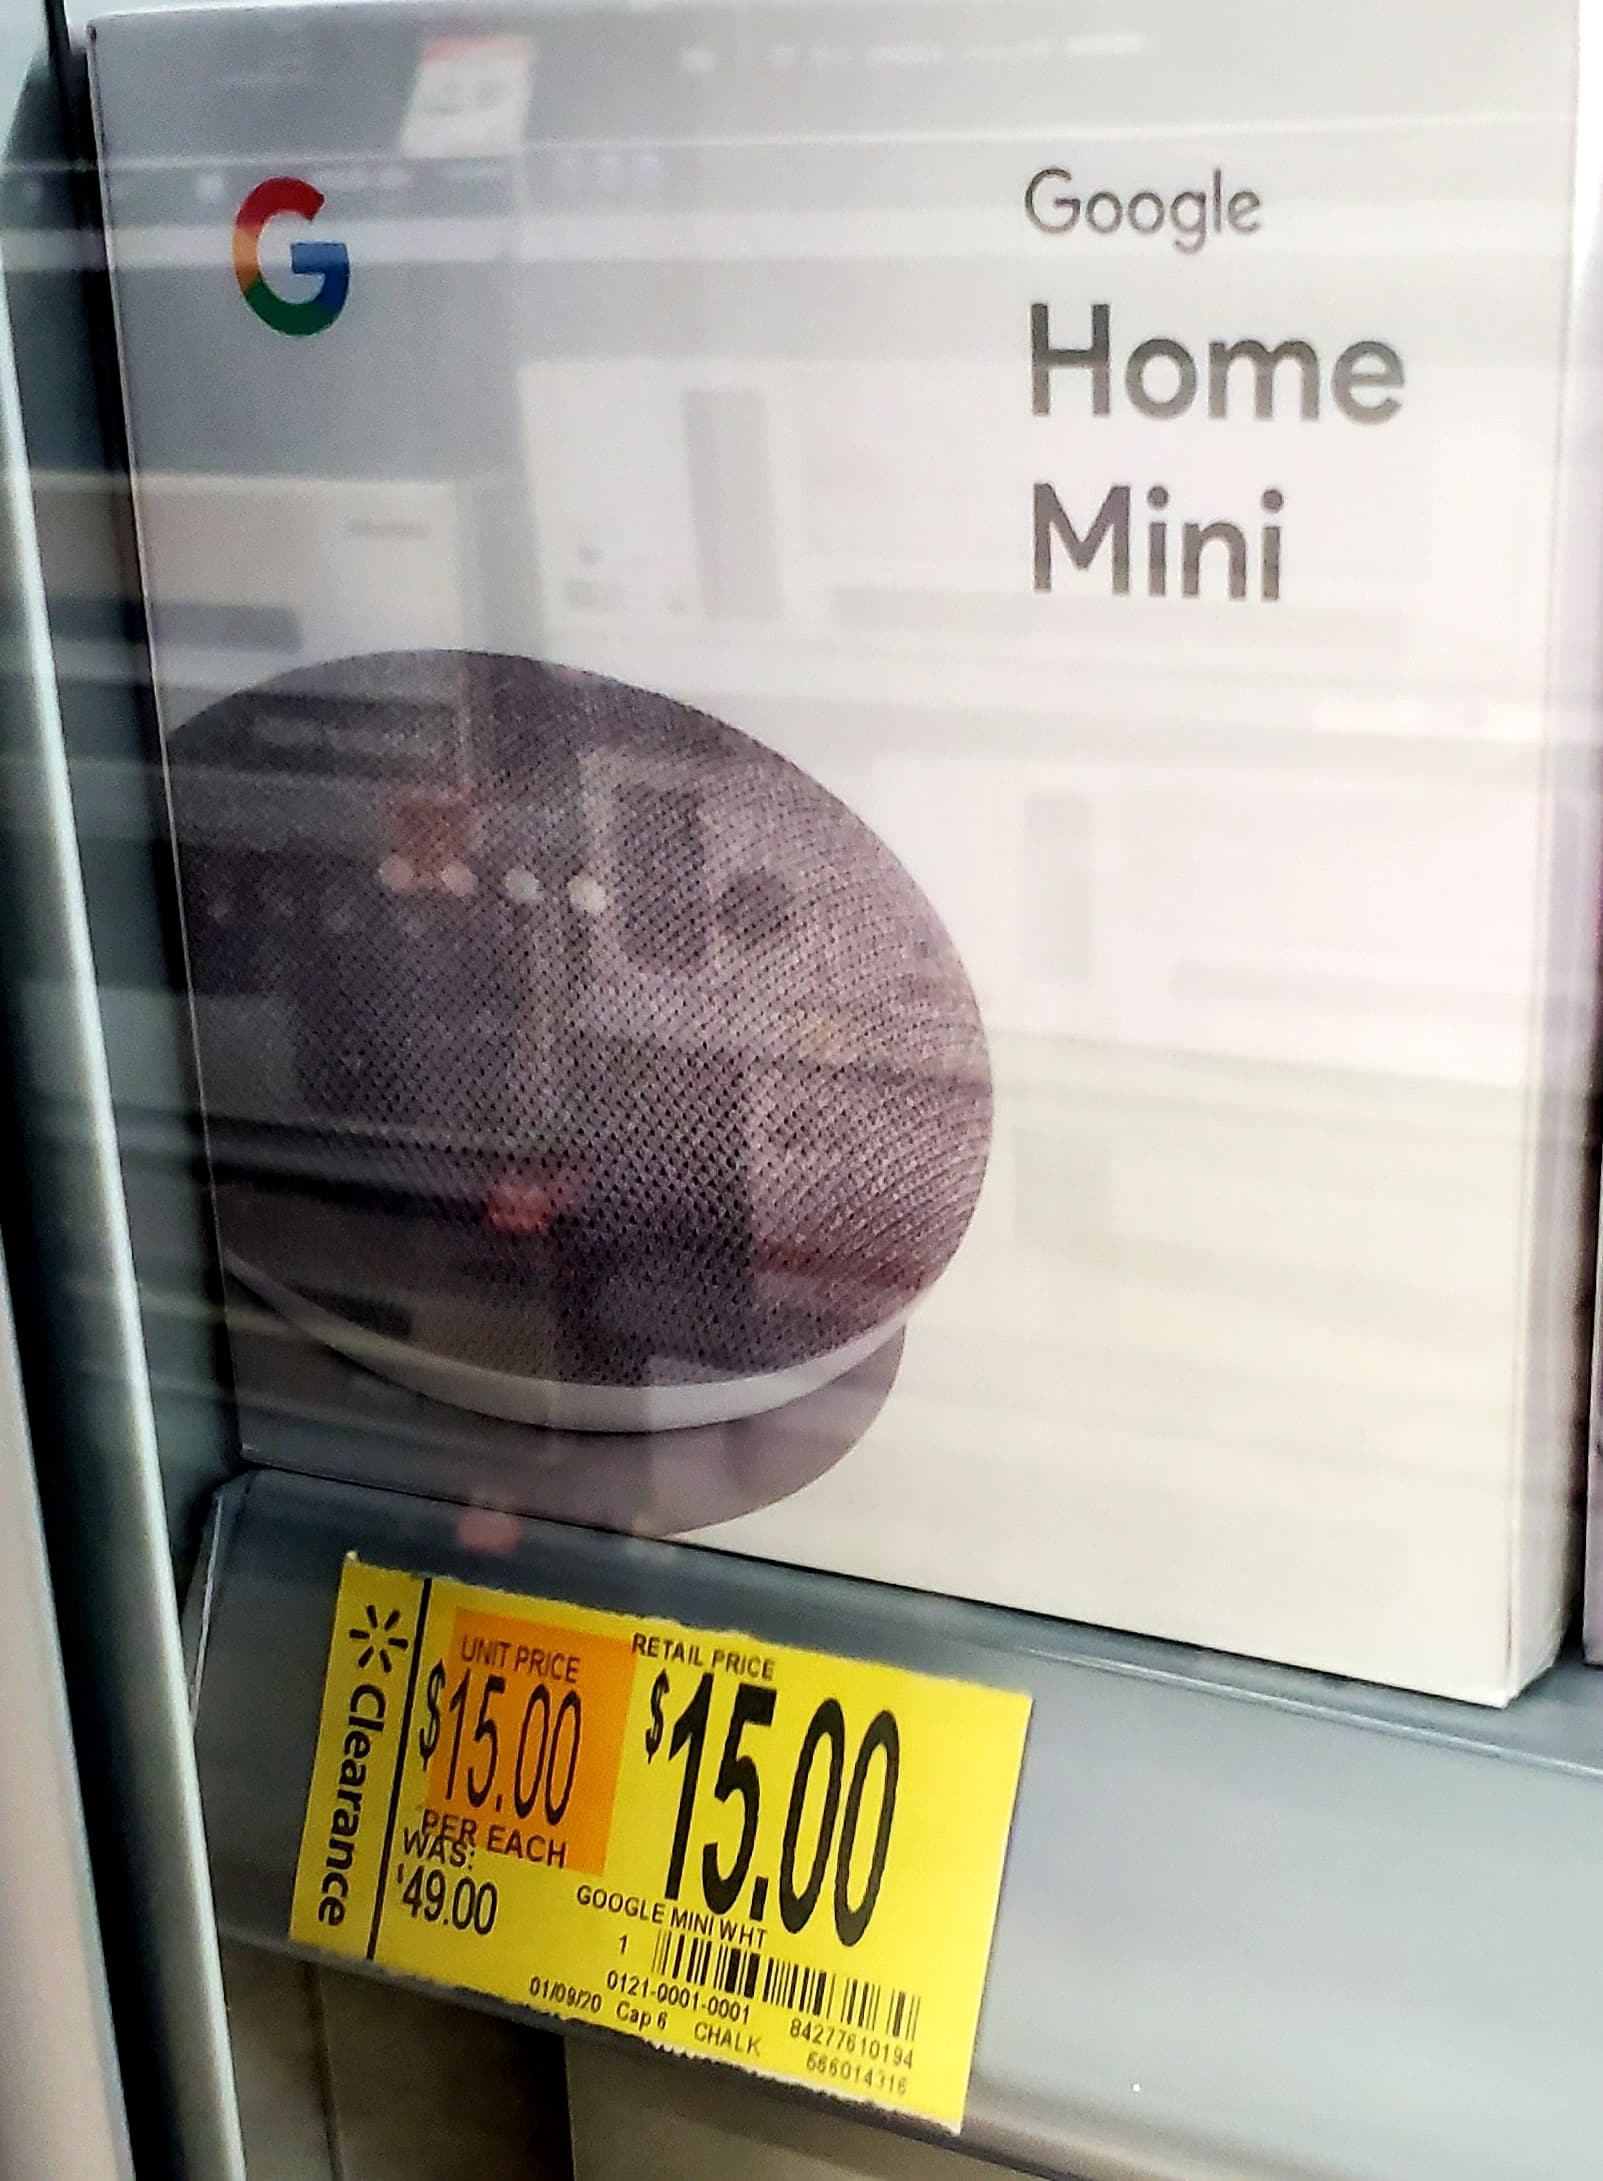 Google Home Mini (Chalk) - $15 [Walmart Clearance - B&M, YMMV] $14.99